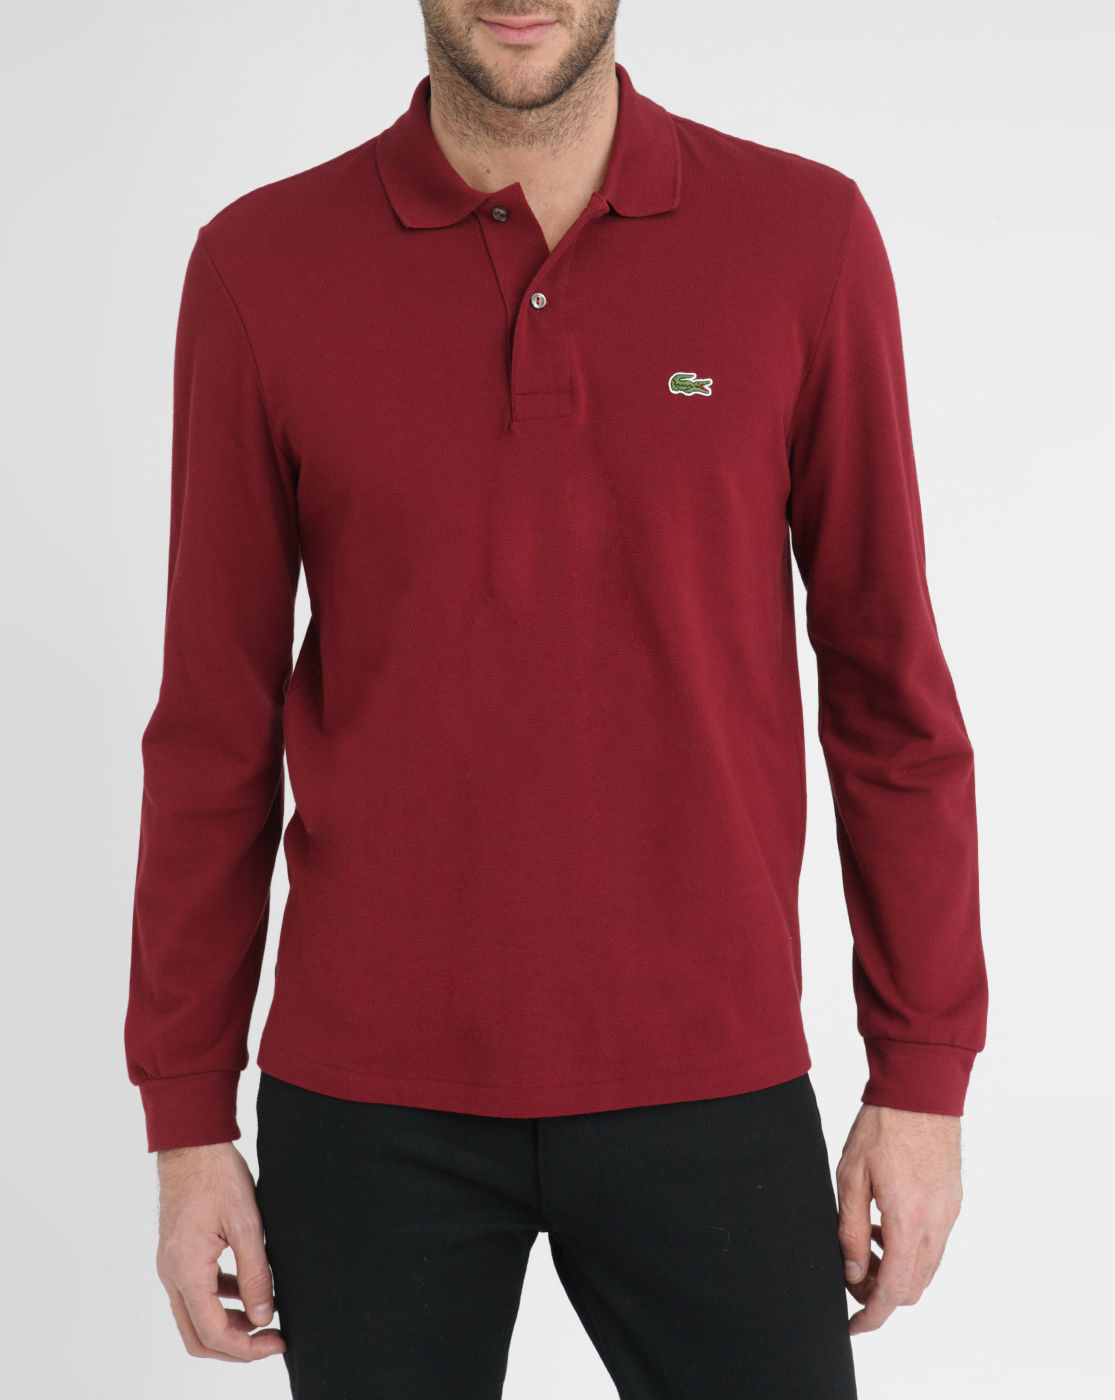 Lacoste burgundy long sleeve polo shirt in purple for men for Polo shirts long sleeve men